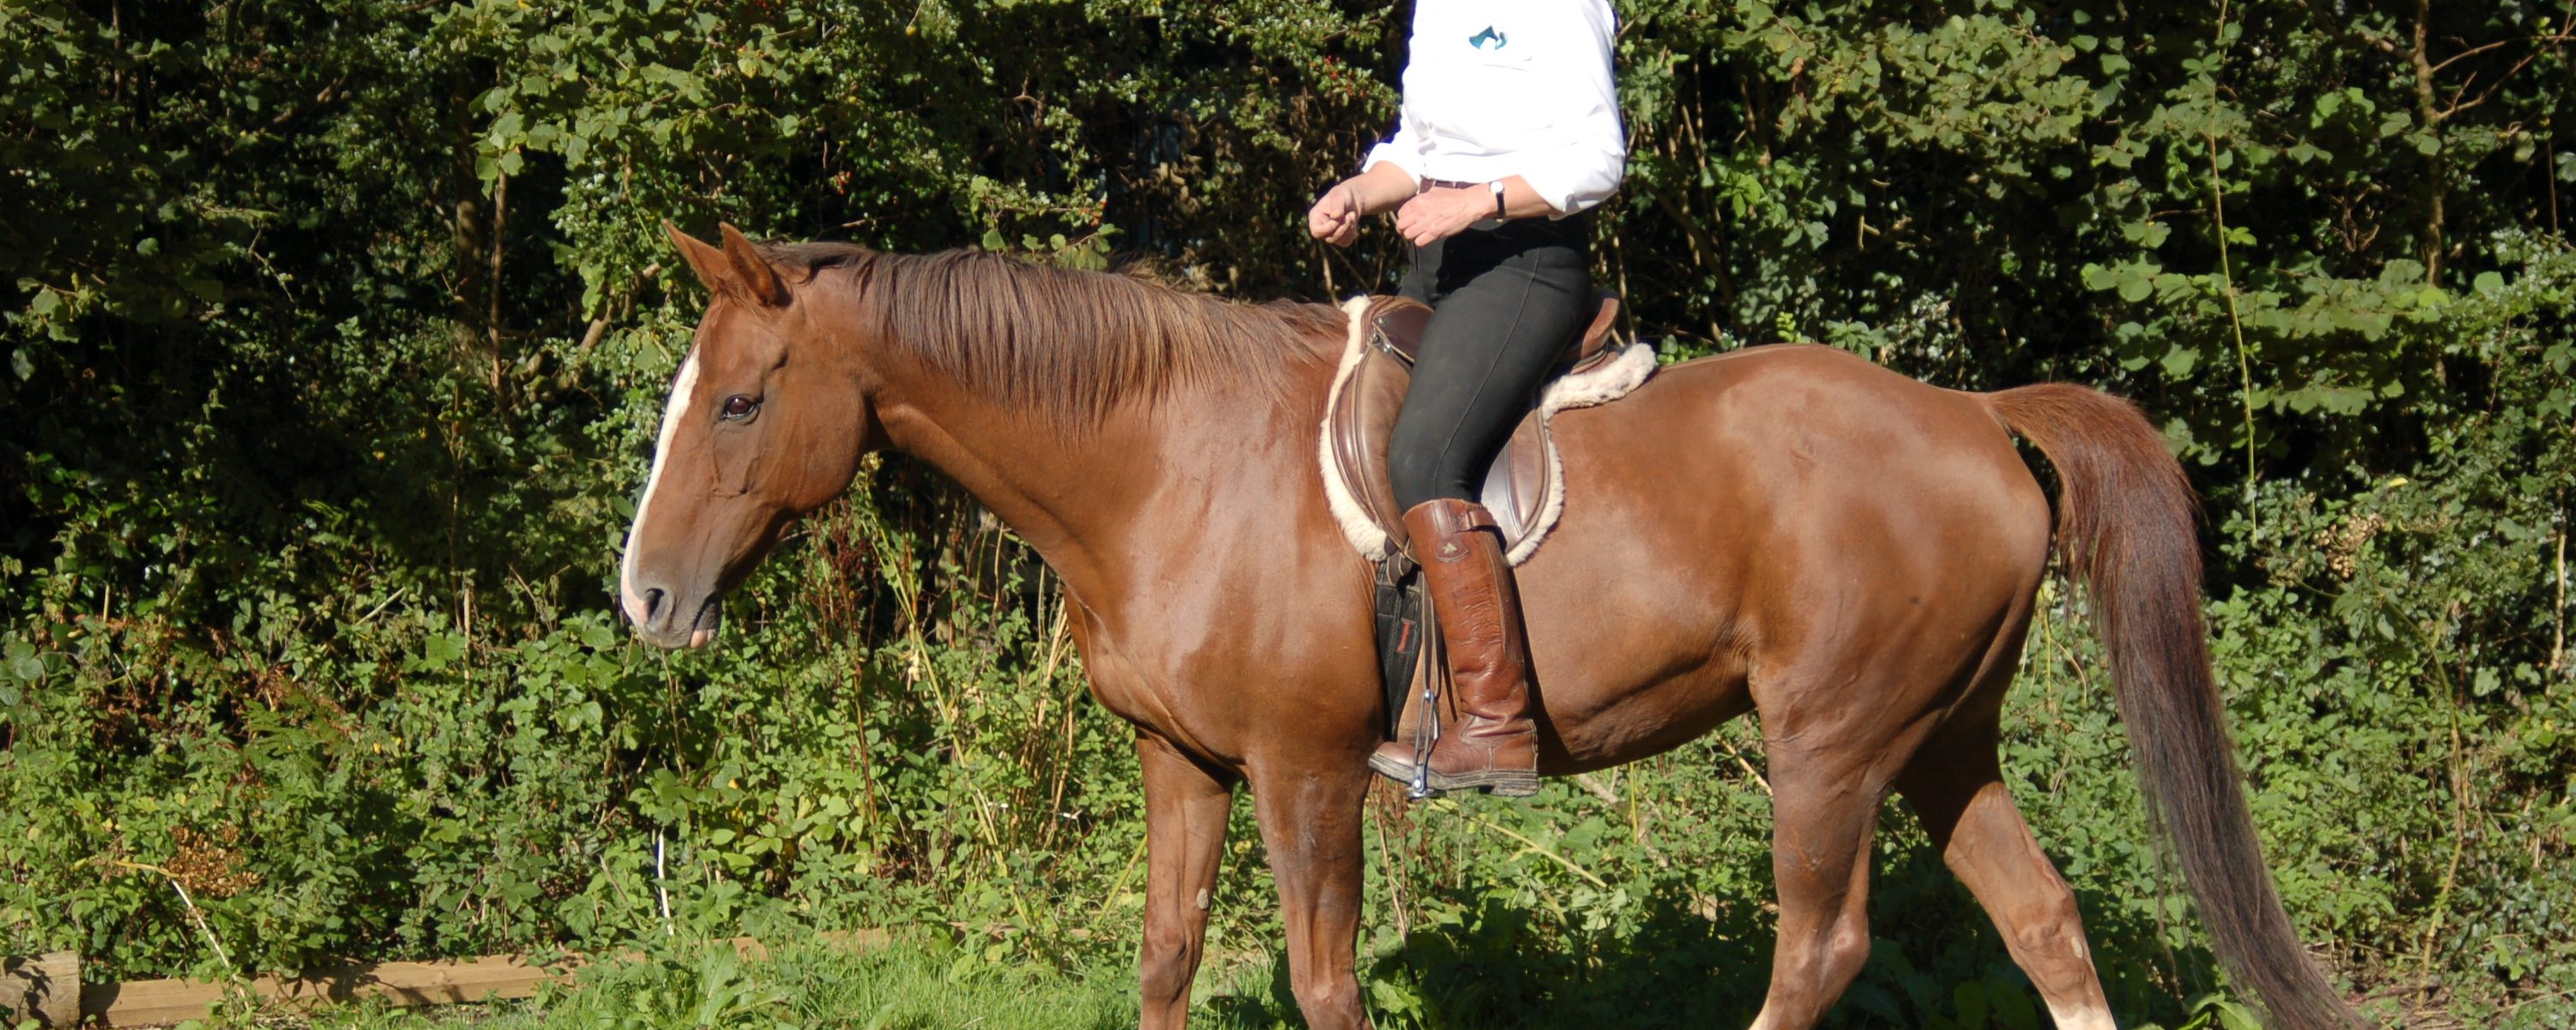 Equagility: riding without a bridle